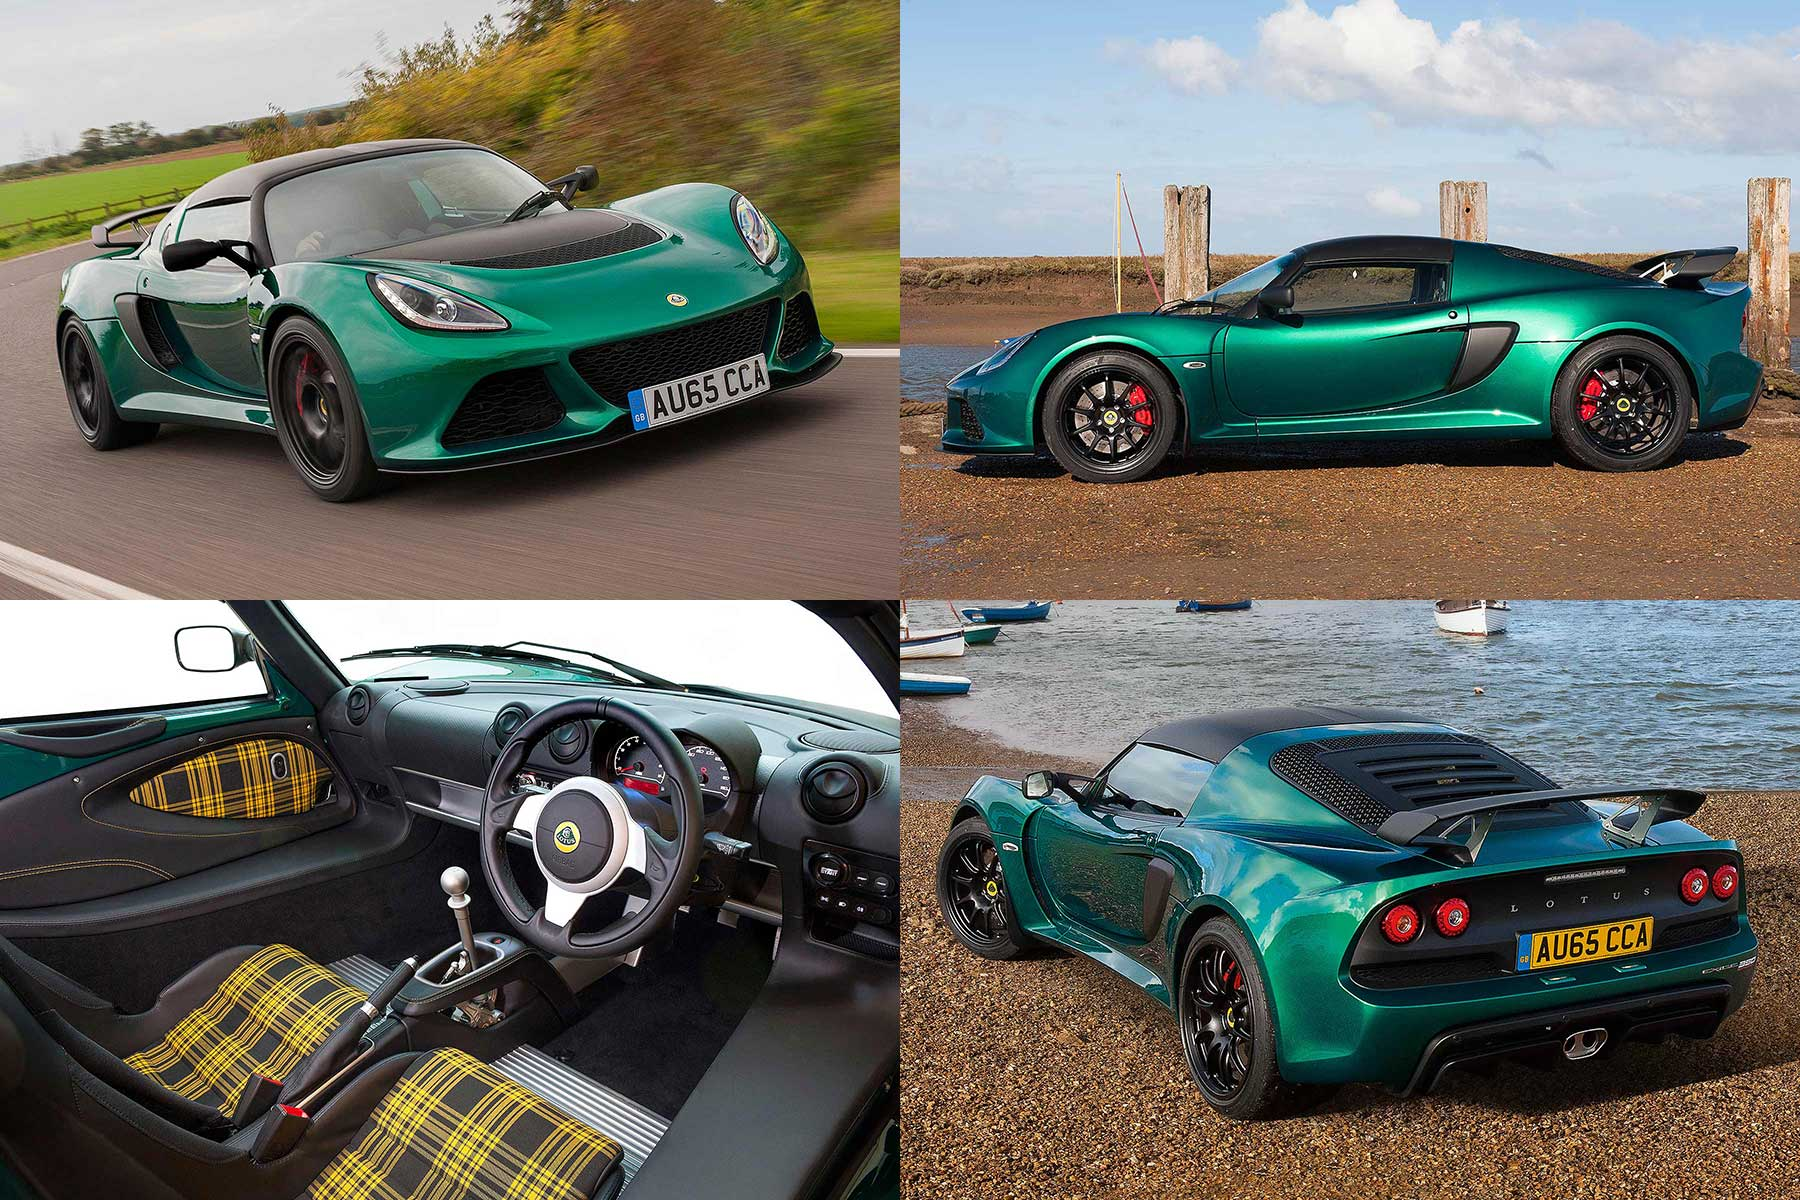 lotus exige sport 350 review 2015 first drive motoring research. Black Bedroom Furniture Sets. Home Design Ideas